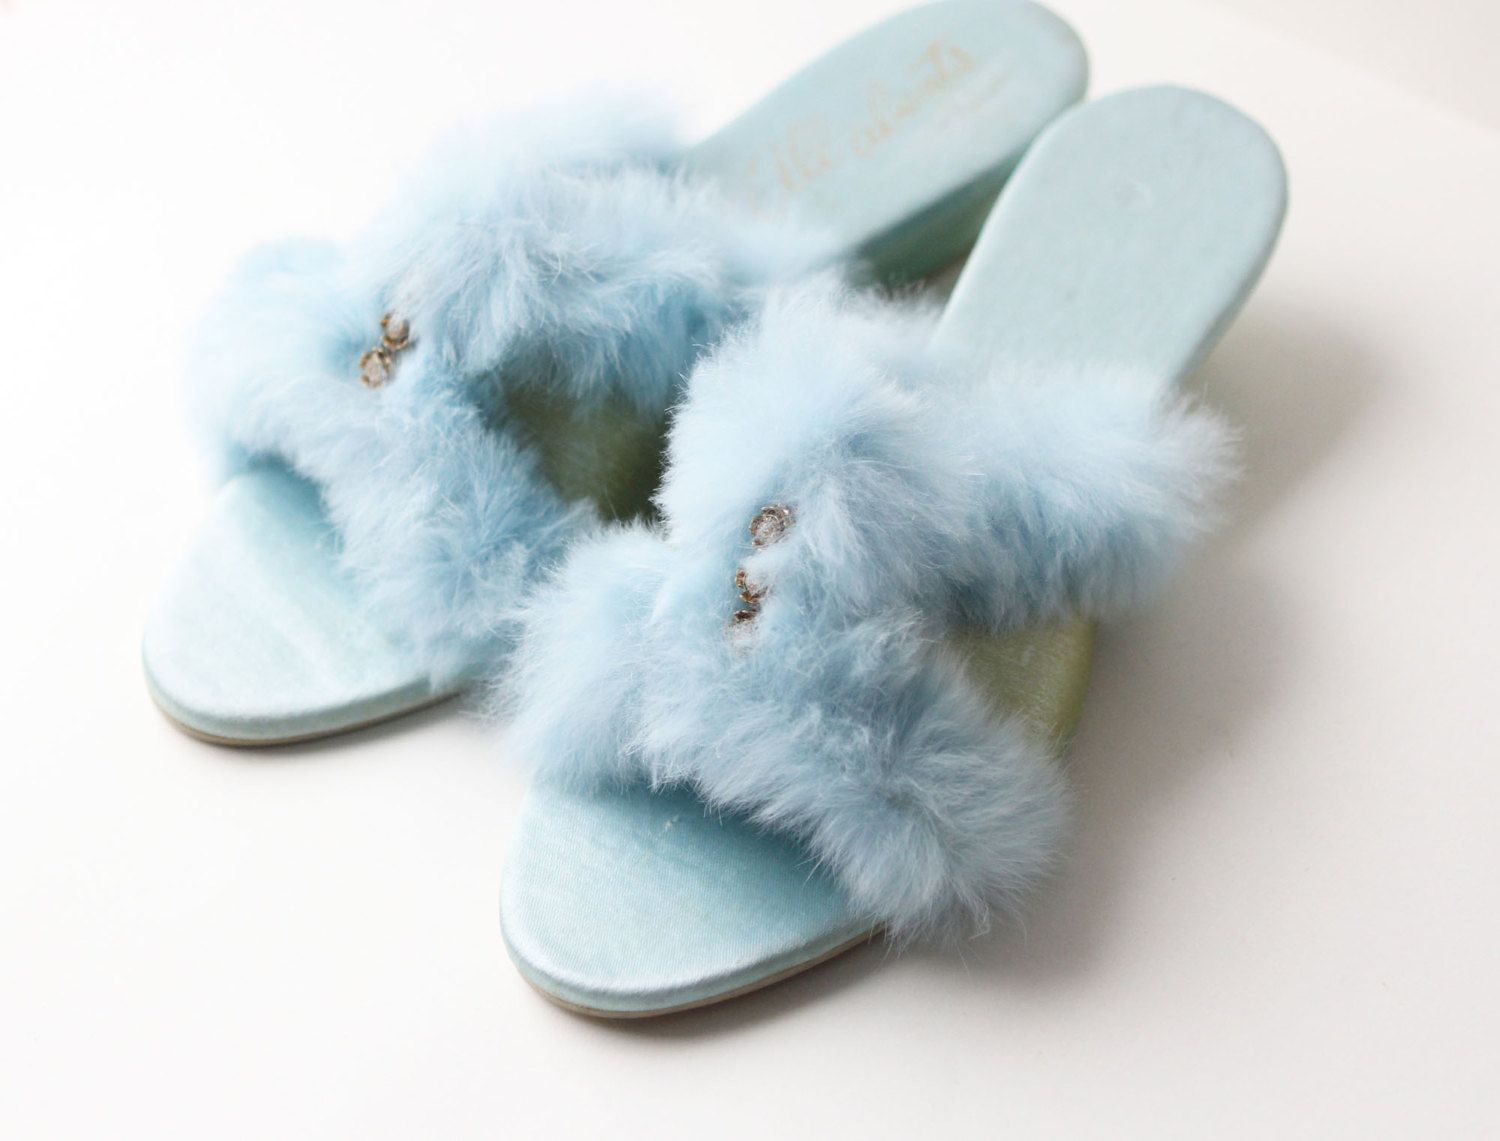 b59e9cee4ee39 VINTAGE SLIPPERS - bedroom shoes, fuzzy powder blue - 1960s - SIZE ...